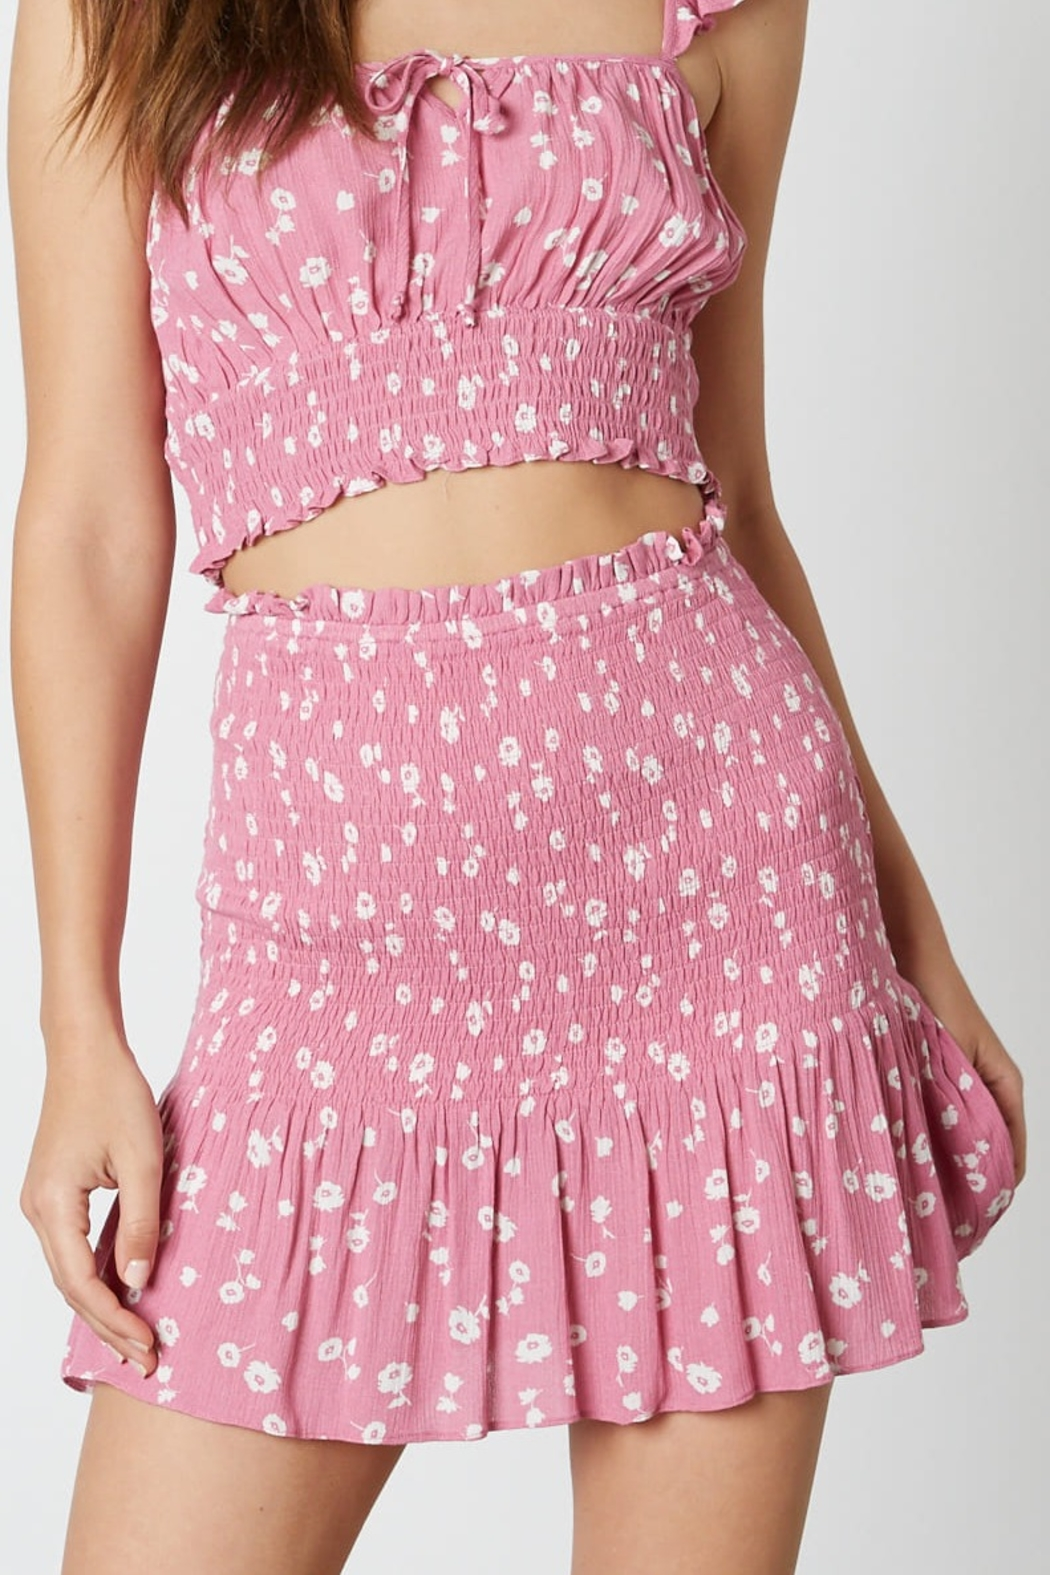 Cotton Candy  Smocked Floral Skirt - Front Cropped Image